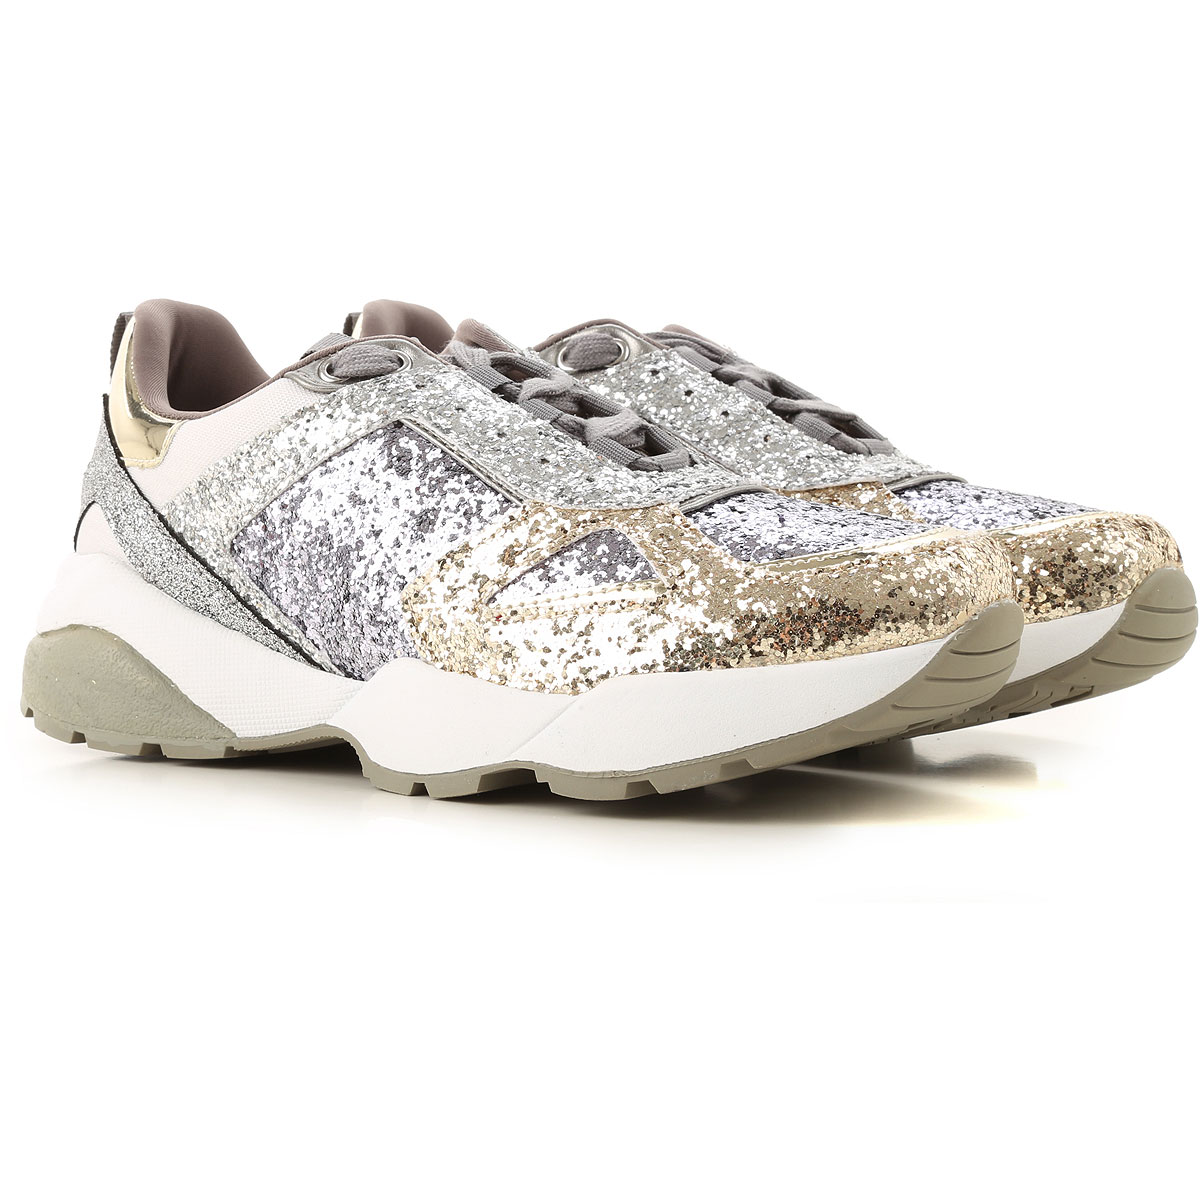 Guess Sneakers for Women Silver USA - GOOFASH